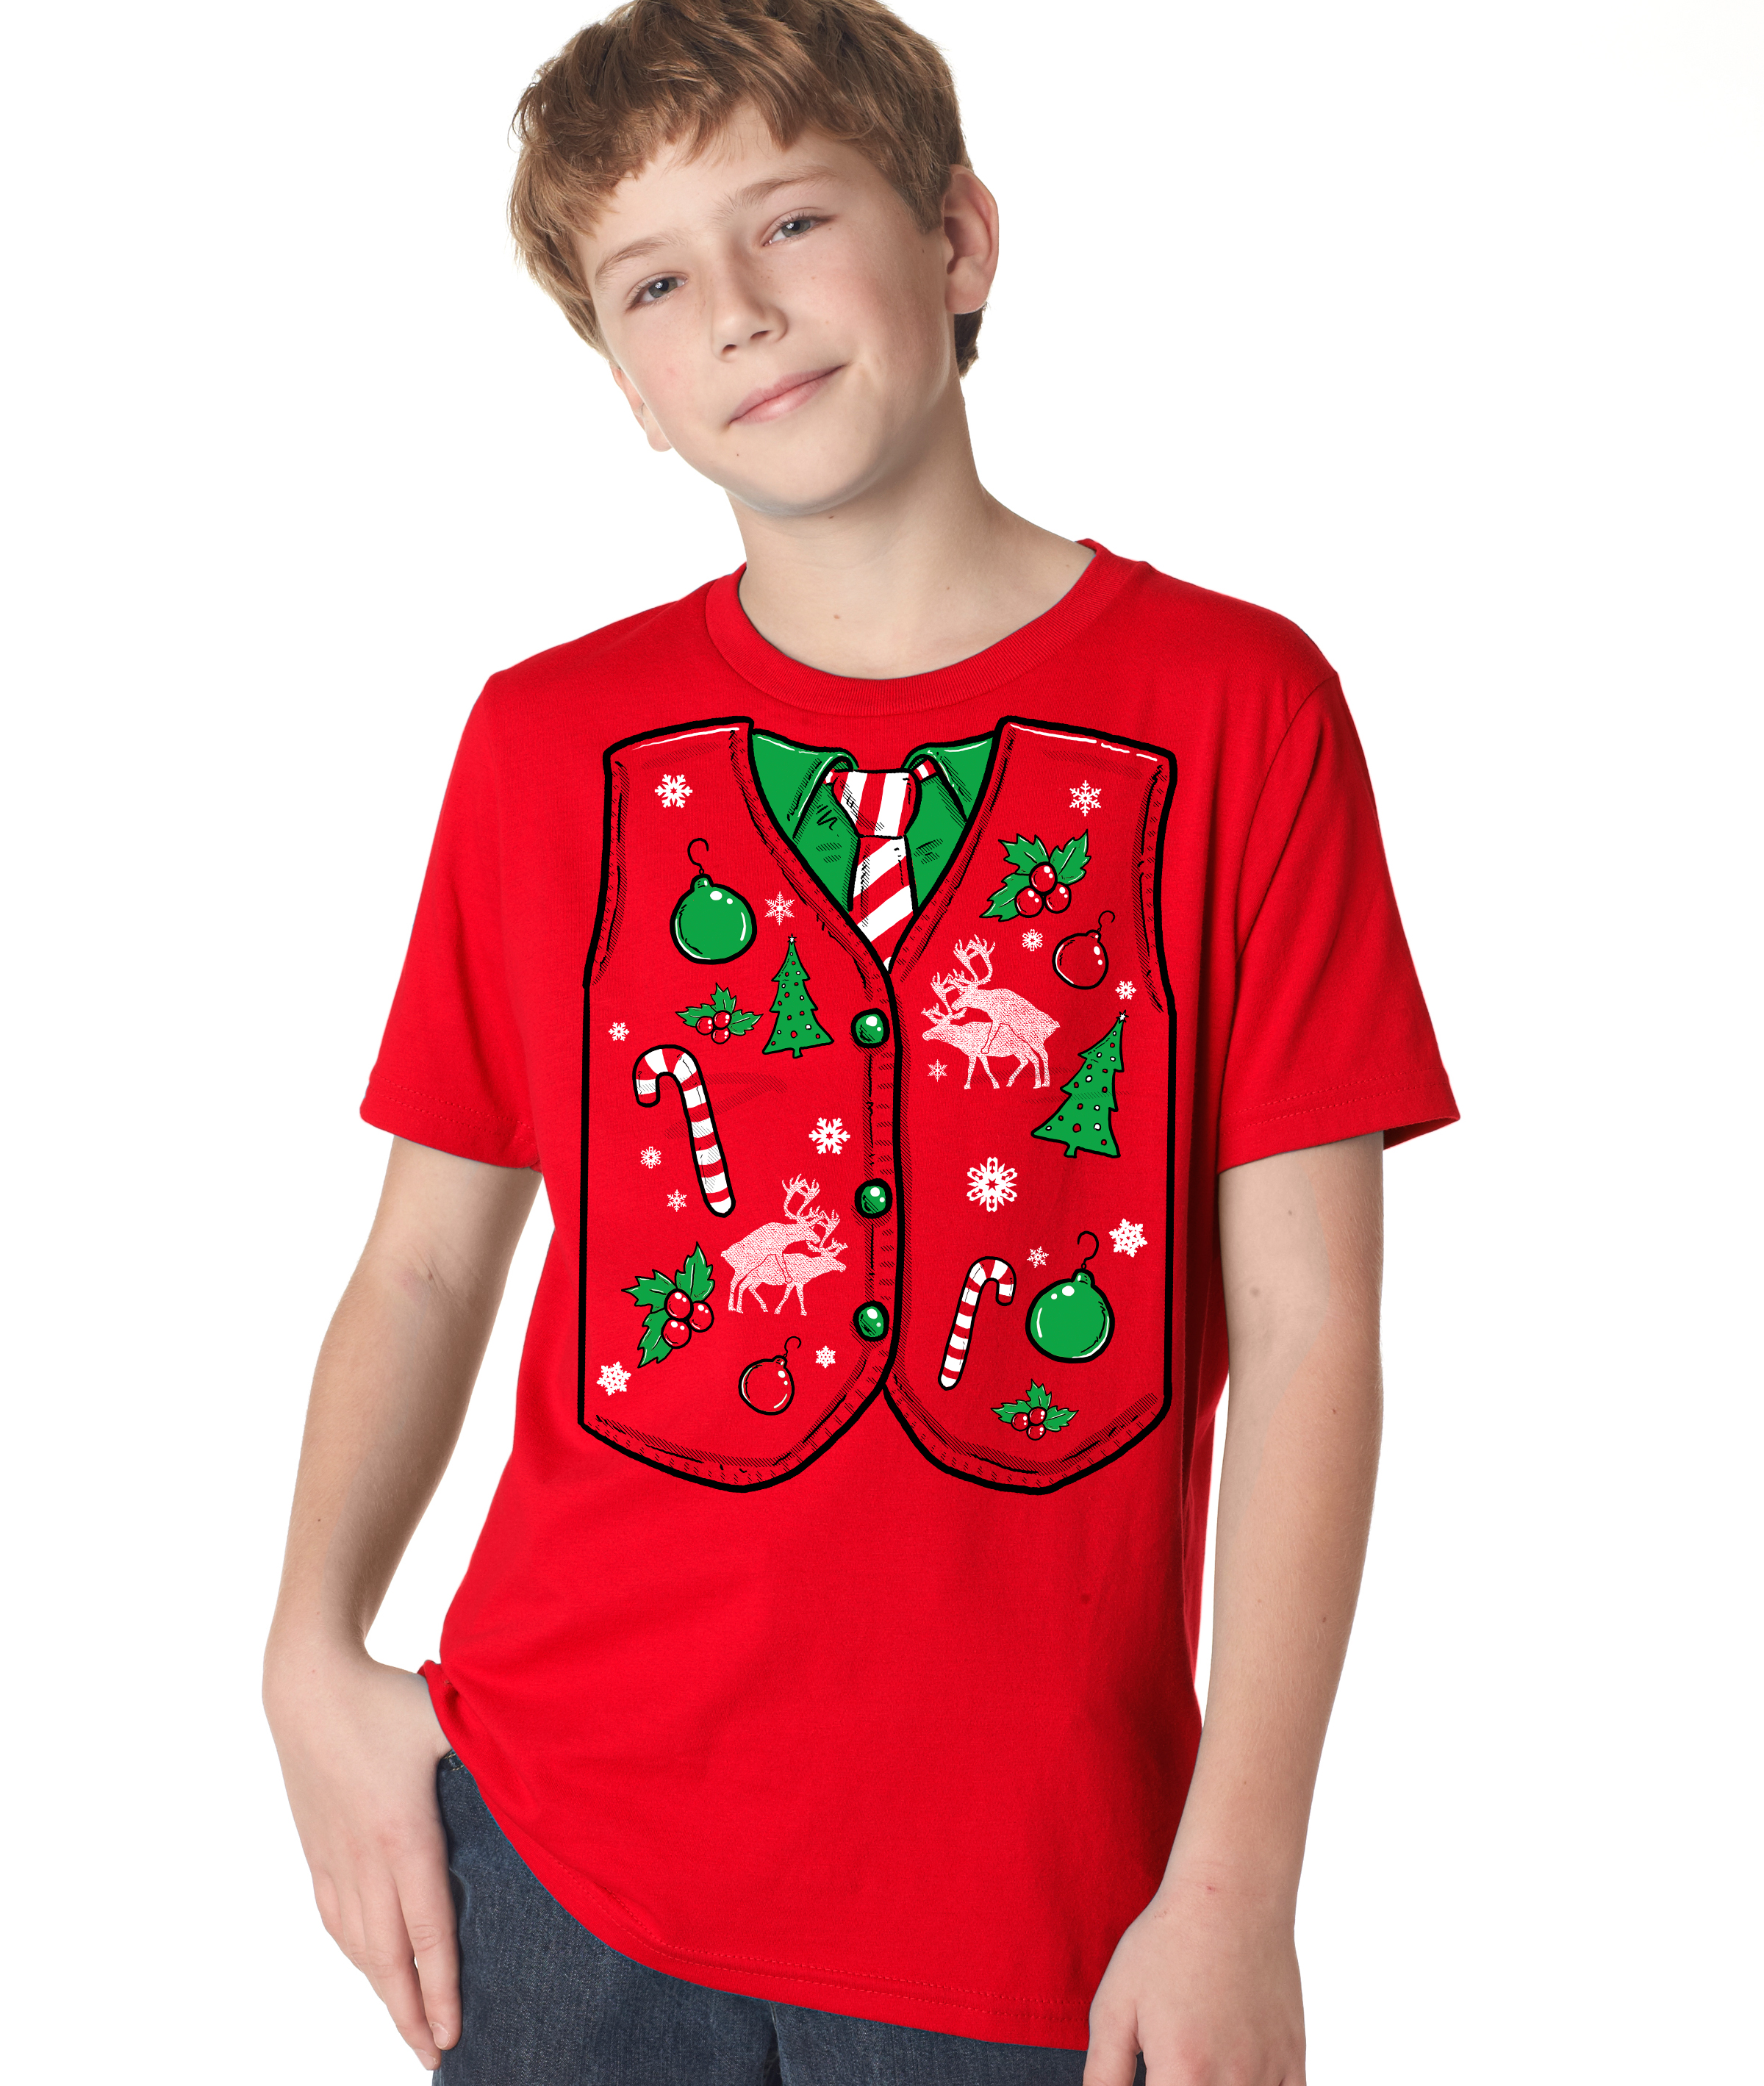 Youth Ugly Christmas Sweater Vest T Shirt Funny Xmas Shirt for Kids ...